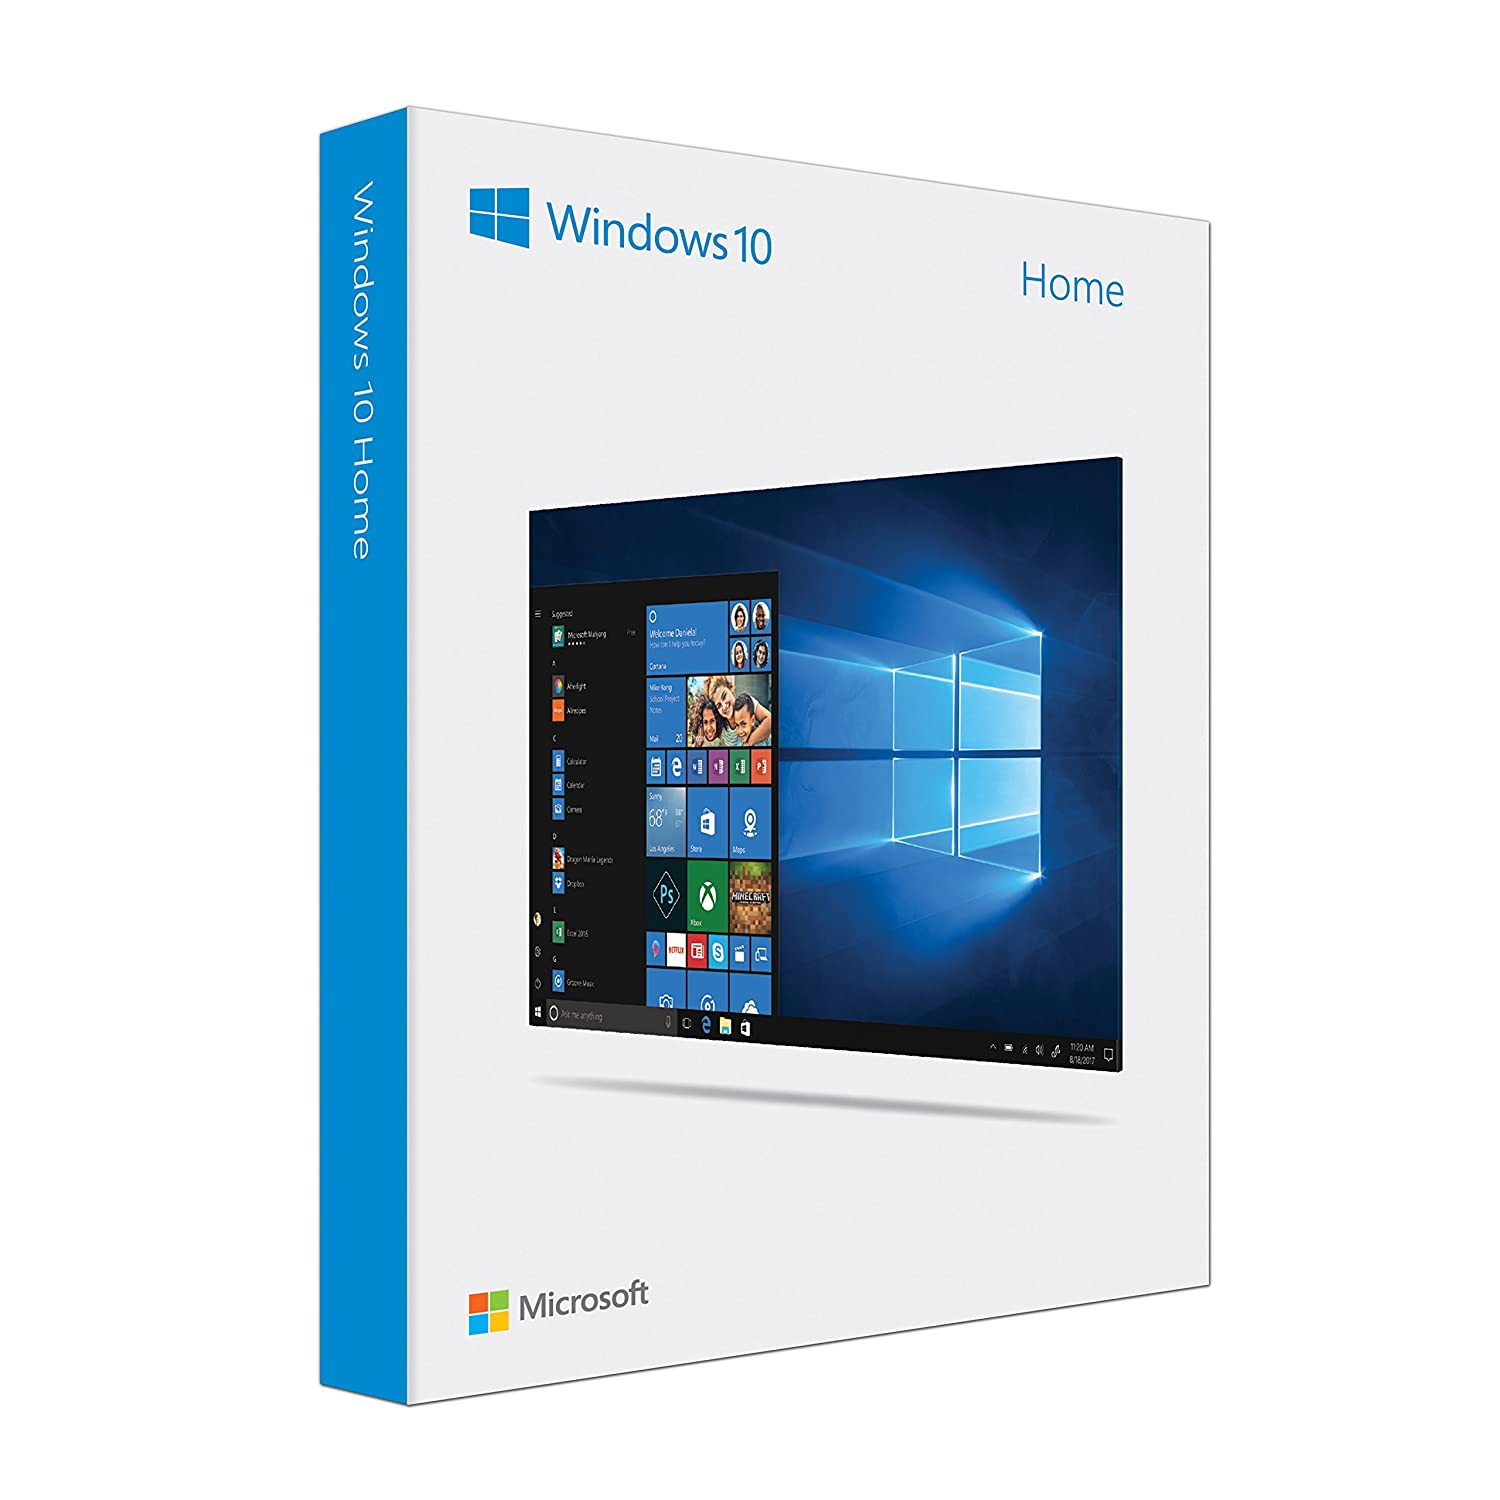 Microsoft Windows 10 Home - USB Flash